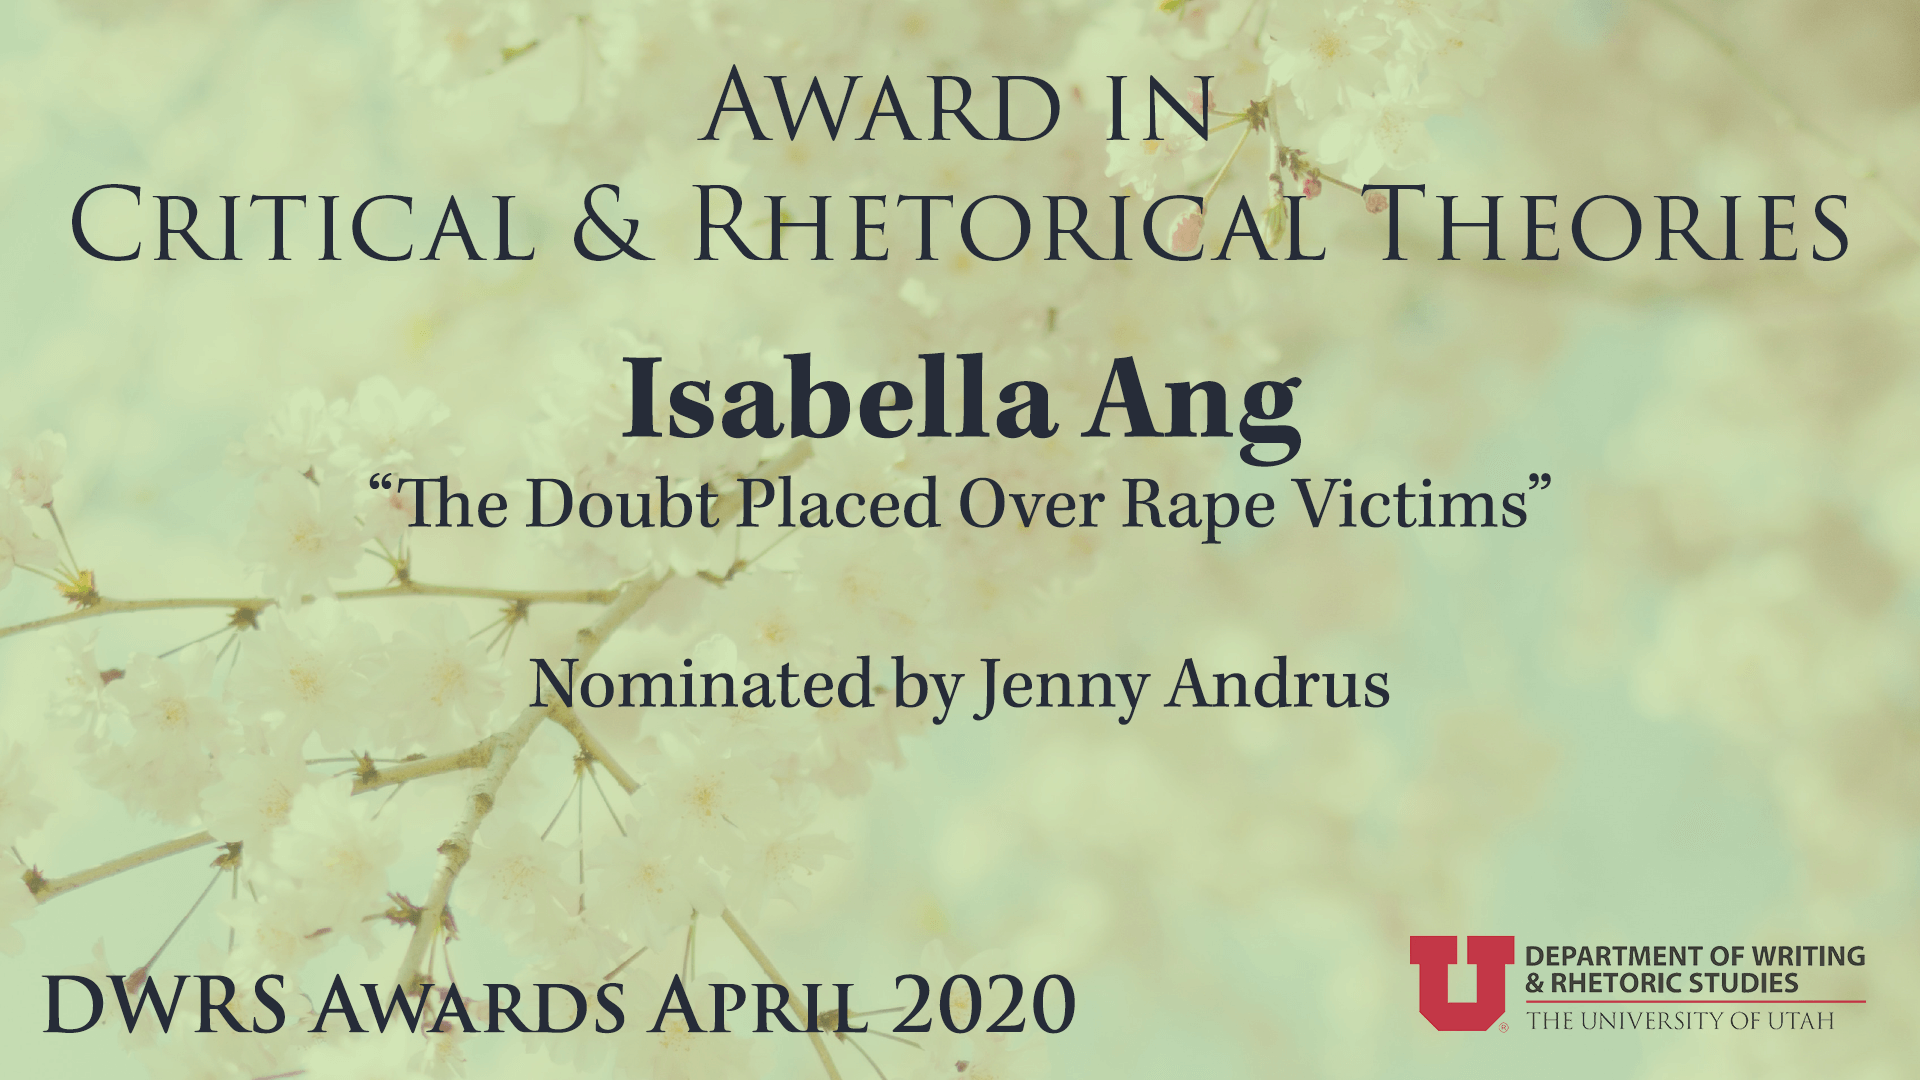 Award in Critical and Rhetorical Theories — Isabella Ang